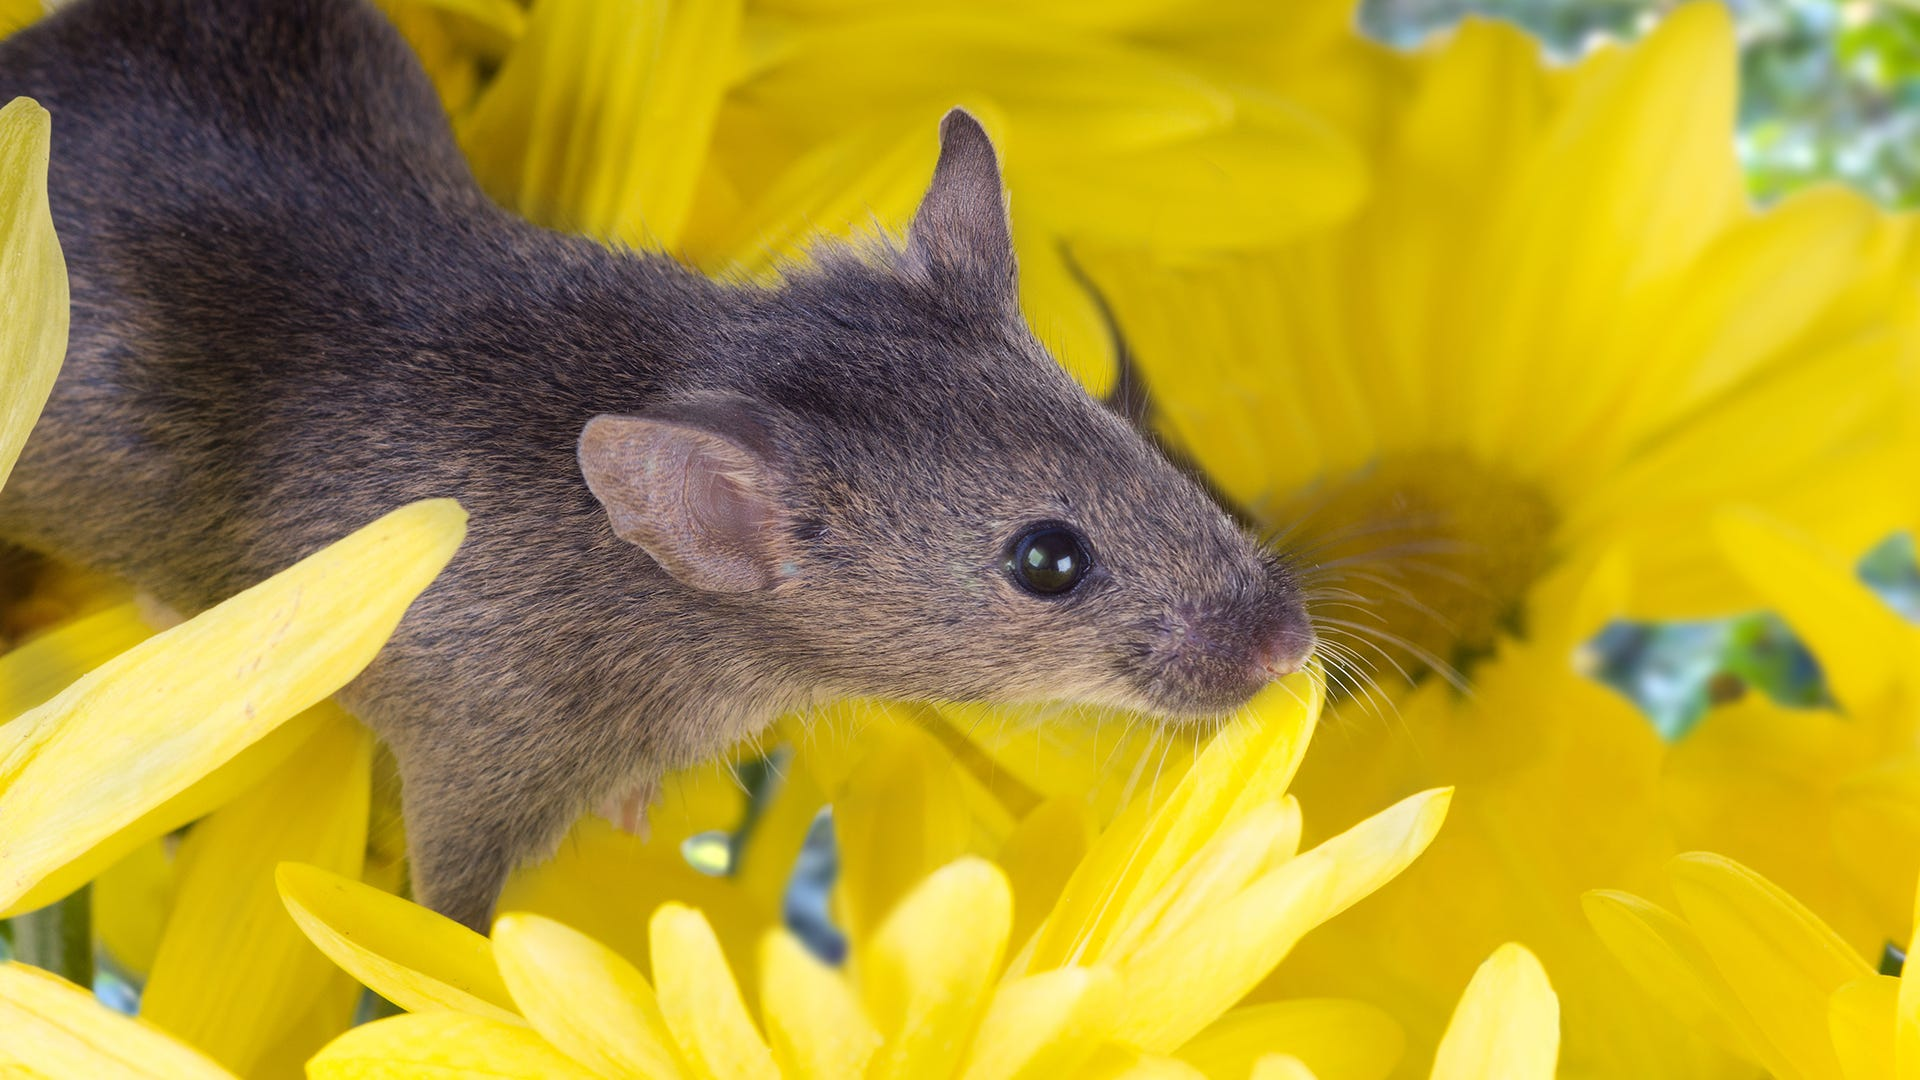 How to Keep Rodents out of the Garden